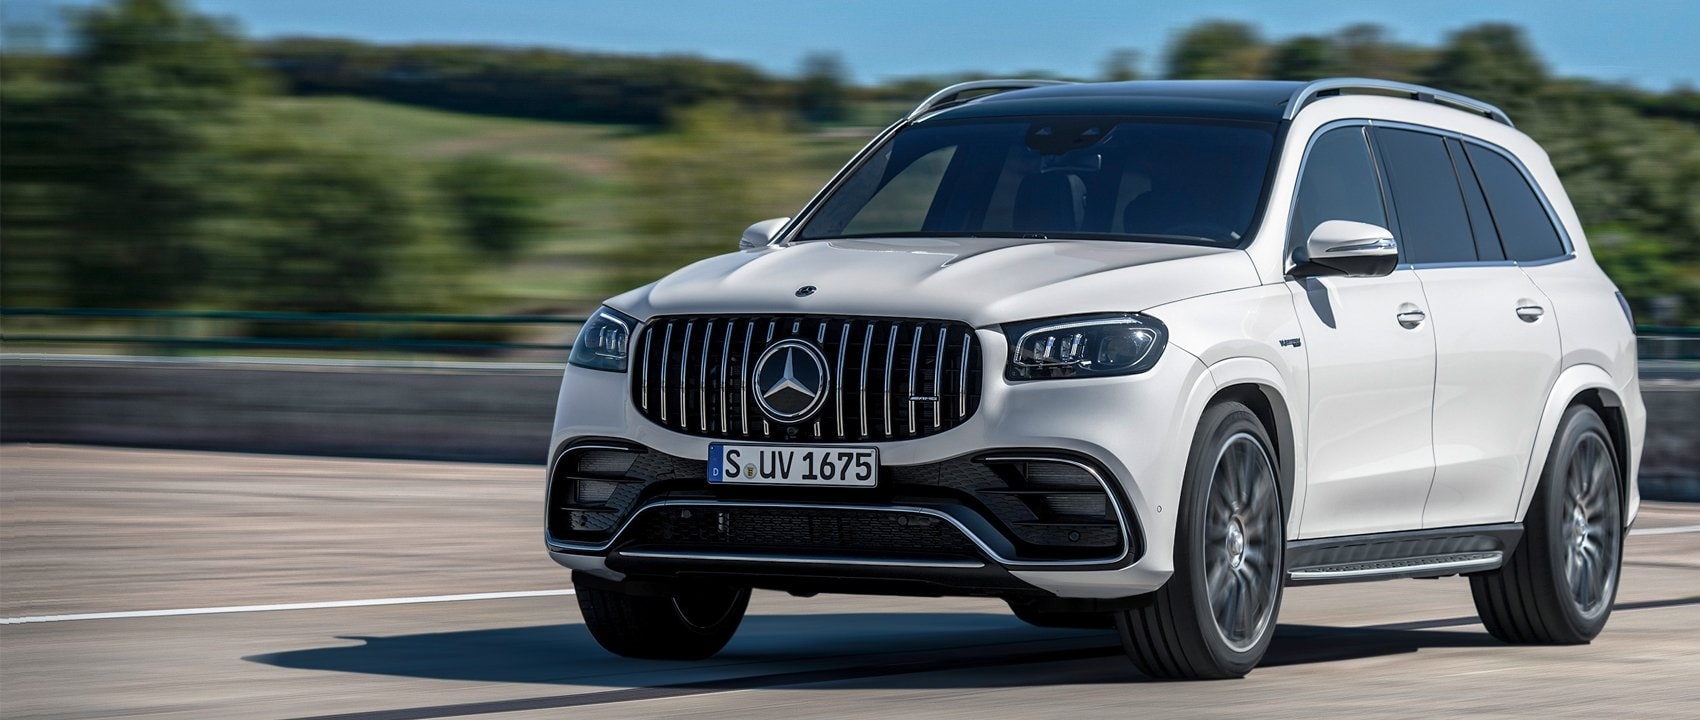 New Mercedes Suv >> The New Mercedes Amg Gls 63 4matic